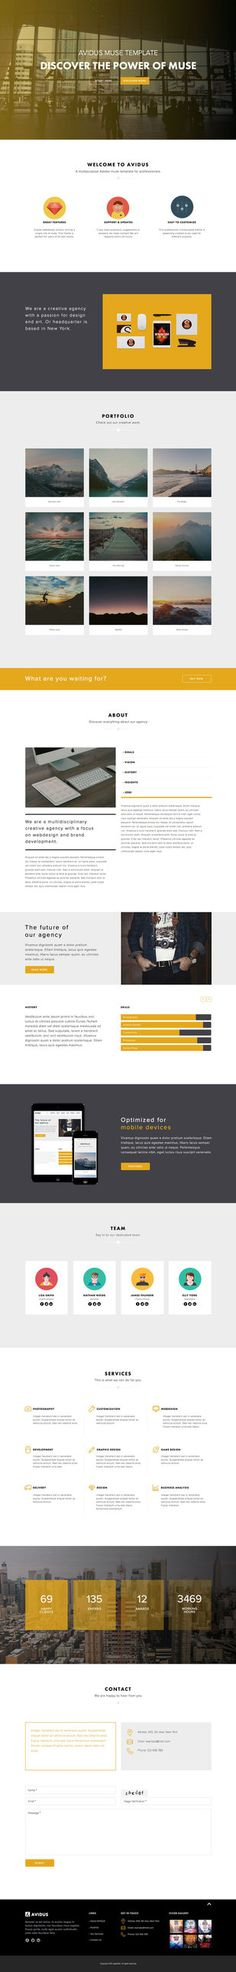 Adobe Muse Templates Free Parallax \u2013 shopeljefe